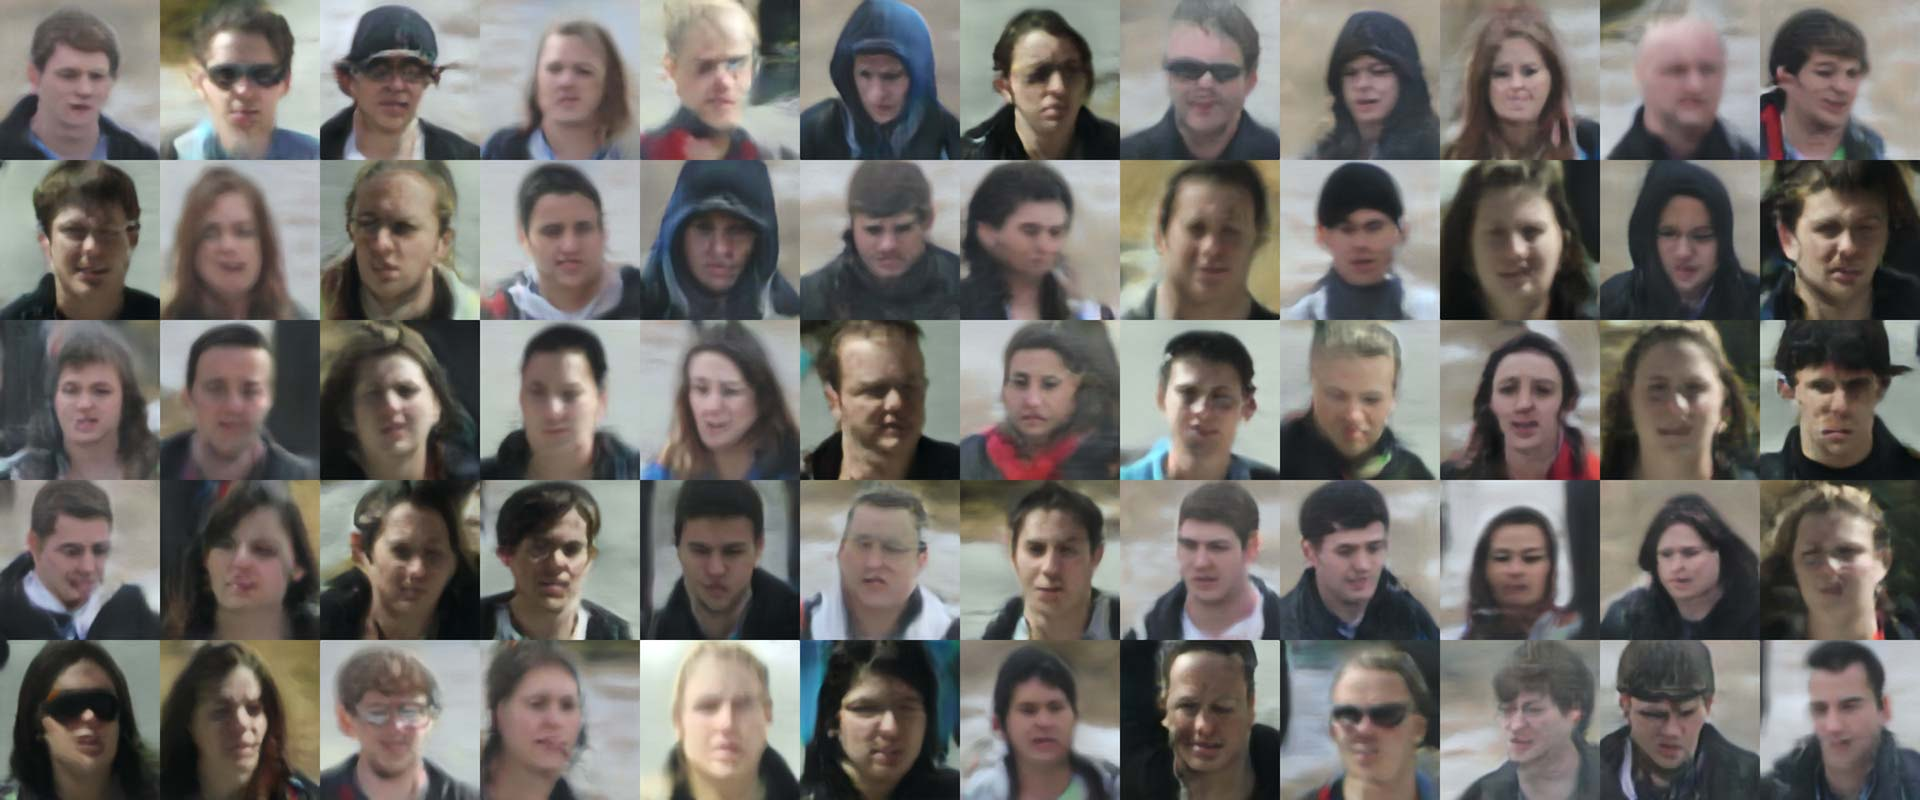 GAN generated approximations of students in the UCCS dataset. © Adam Harvey / MegaPixels.cc 2018. Based on the UnConstrained College Students dataset, made available under a modified ODC Attribution License. Rendered using Progressive Growing of GANs for Improved Quality, Stability, and Variation